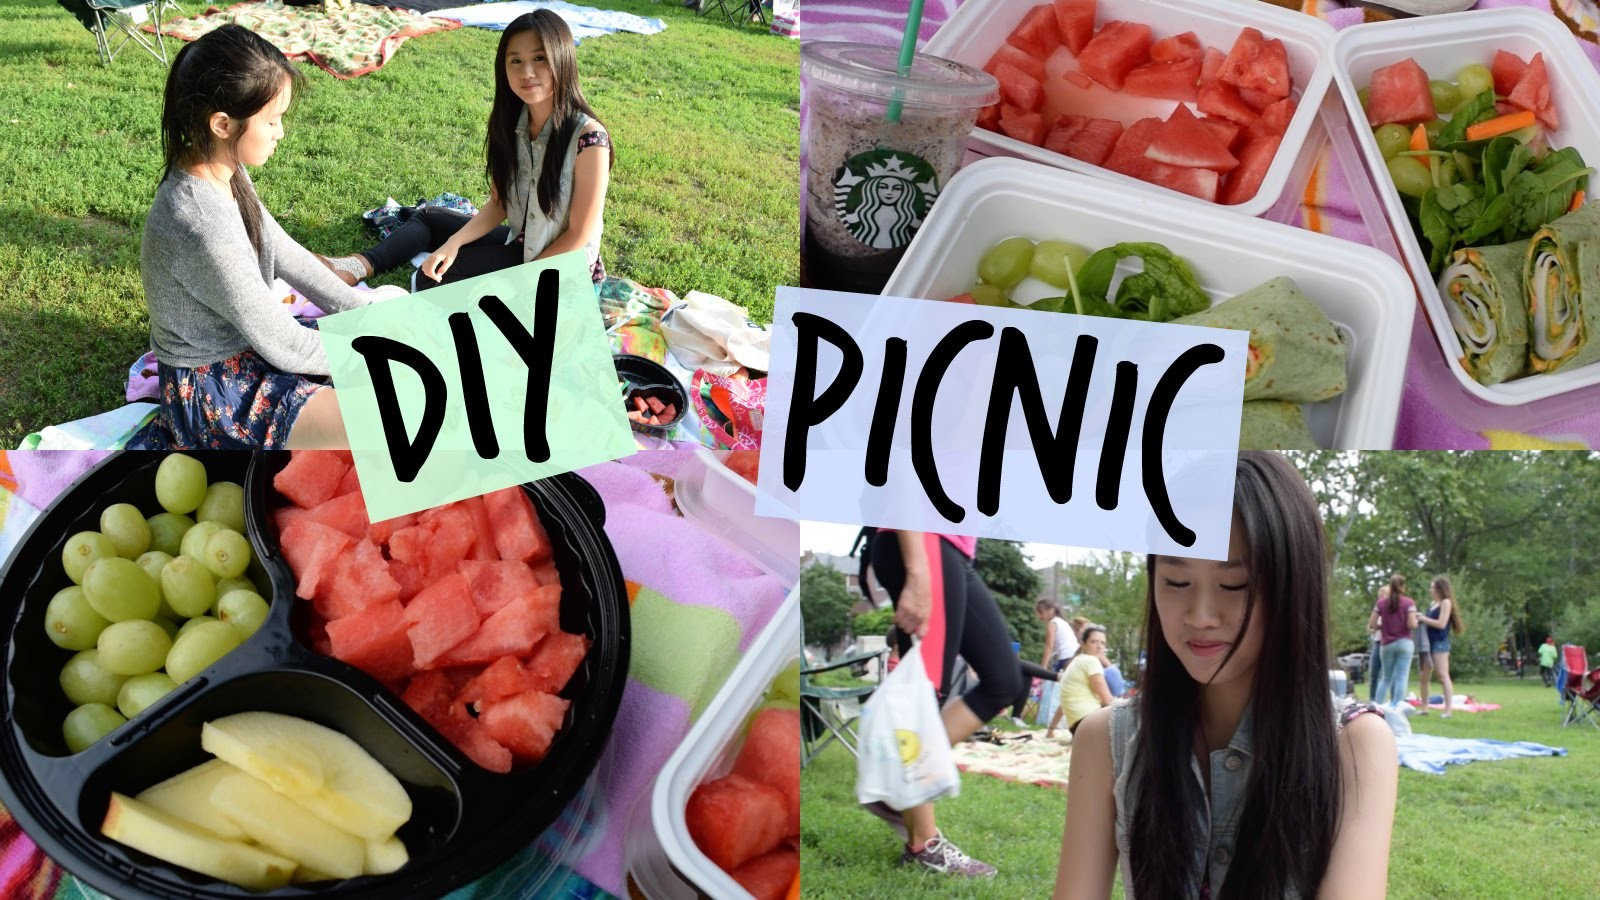 DIY Picnic! - Snacks & Outfits